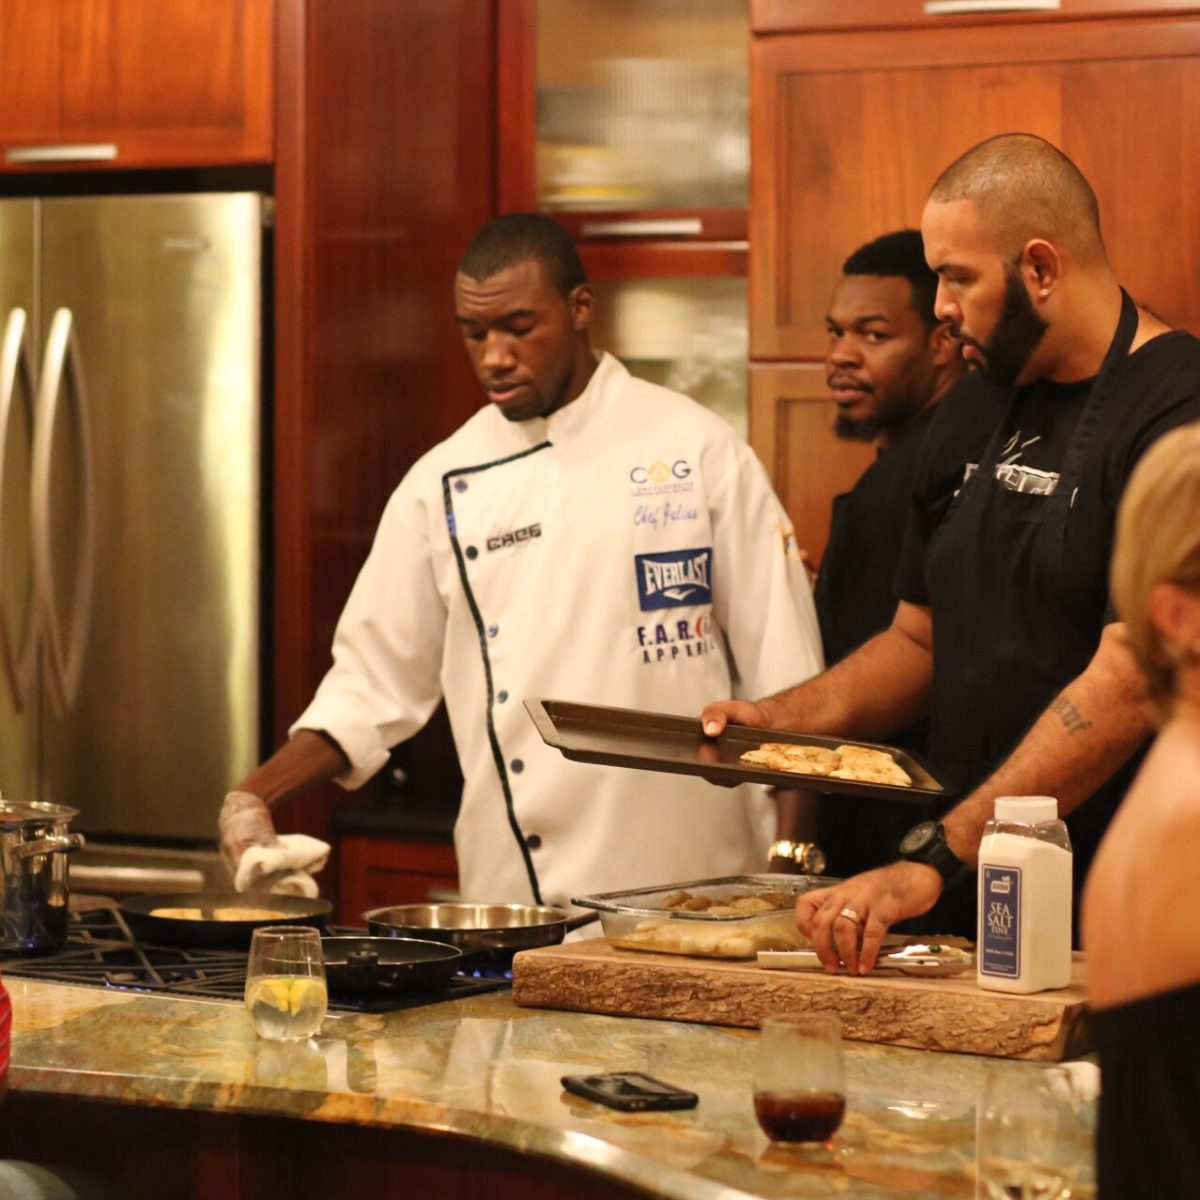 Caribbean chef and boxer Julius Jackson in St. Croix